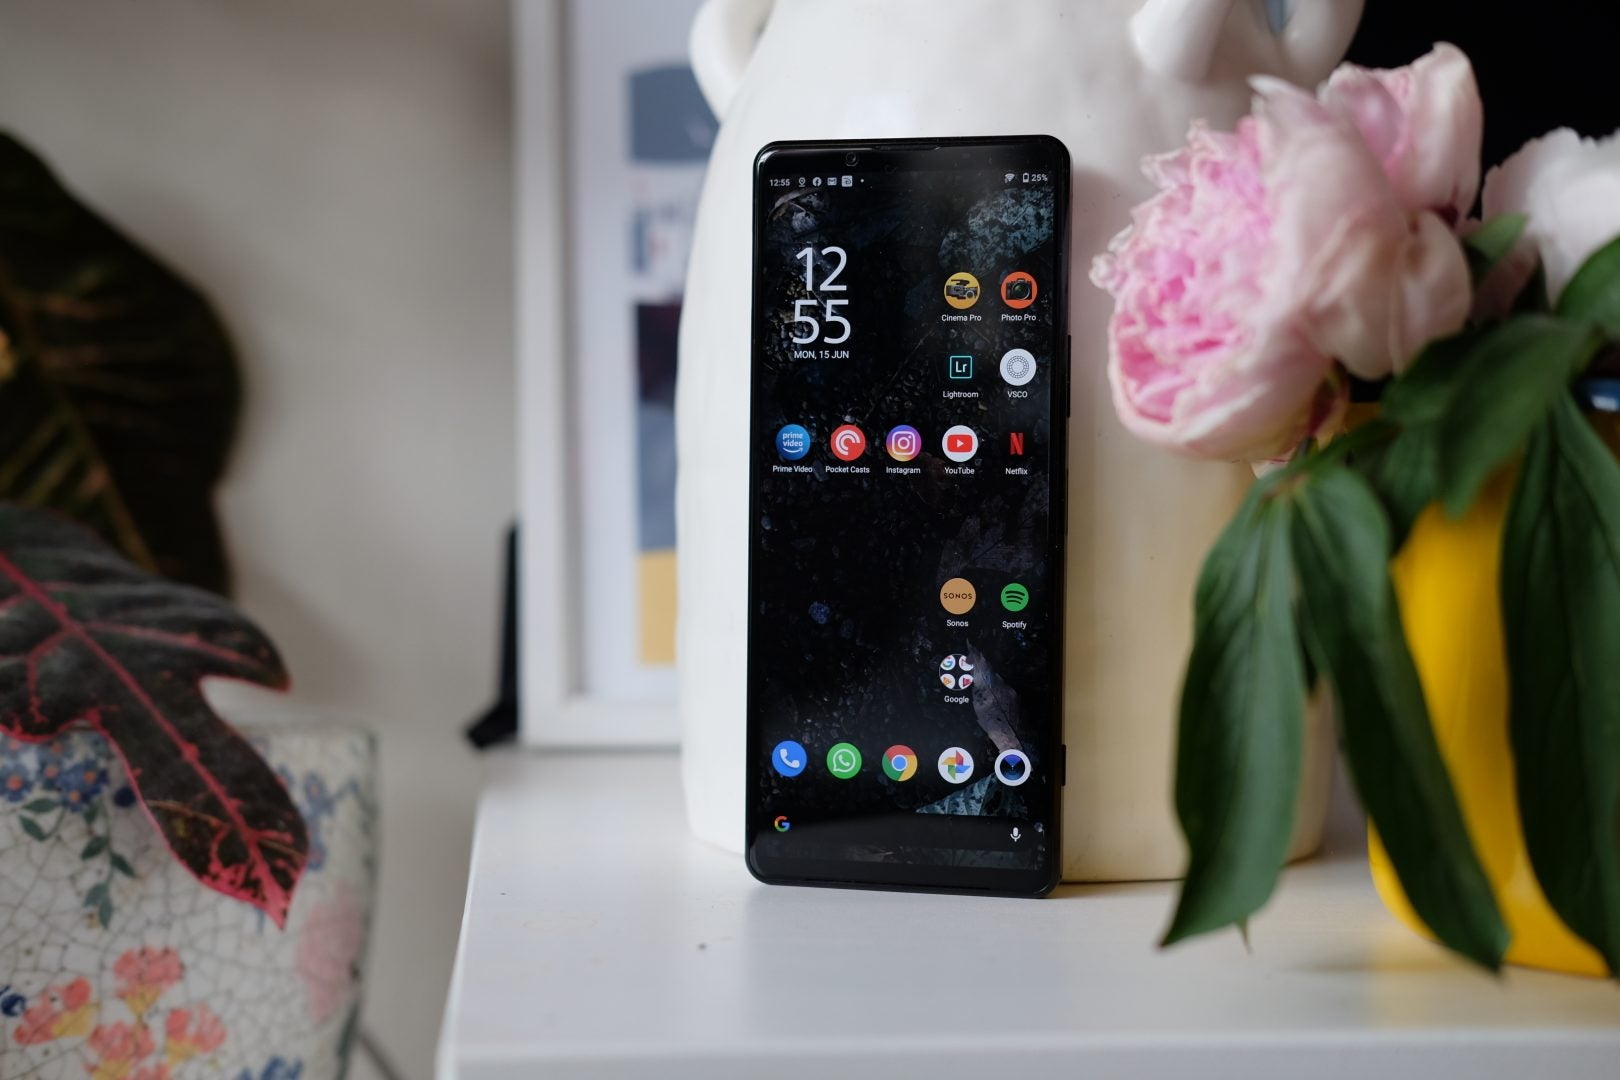 Sony Xperia 1 III: Everything you need to know about the smartphone